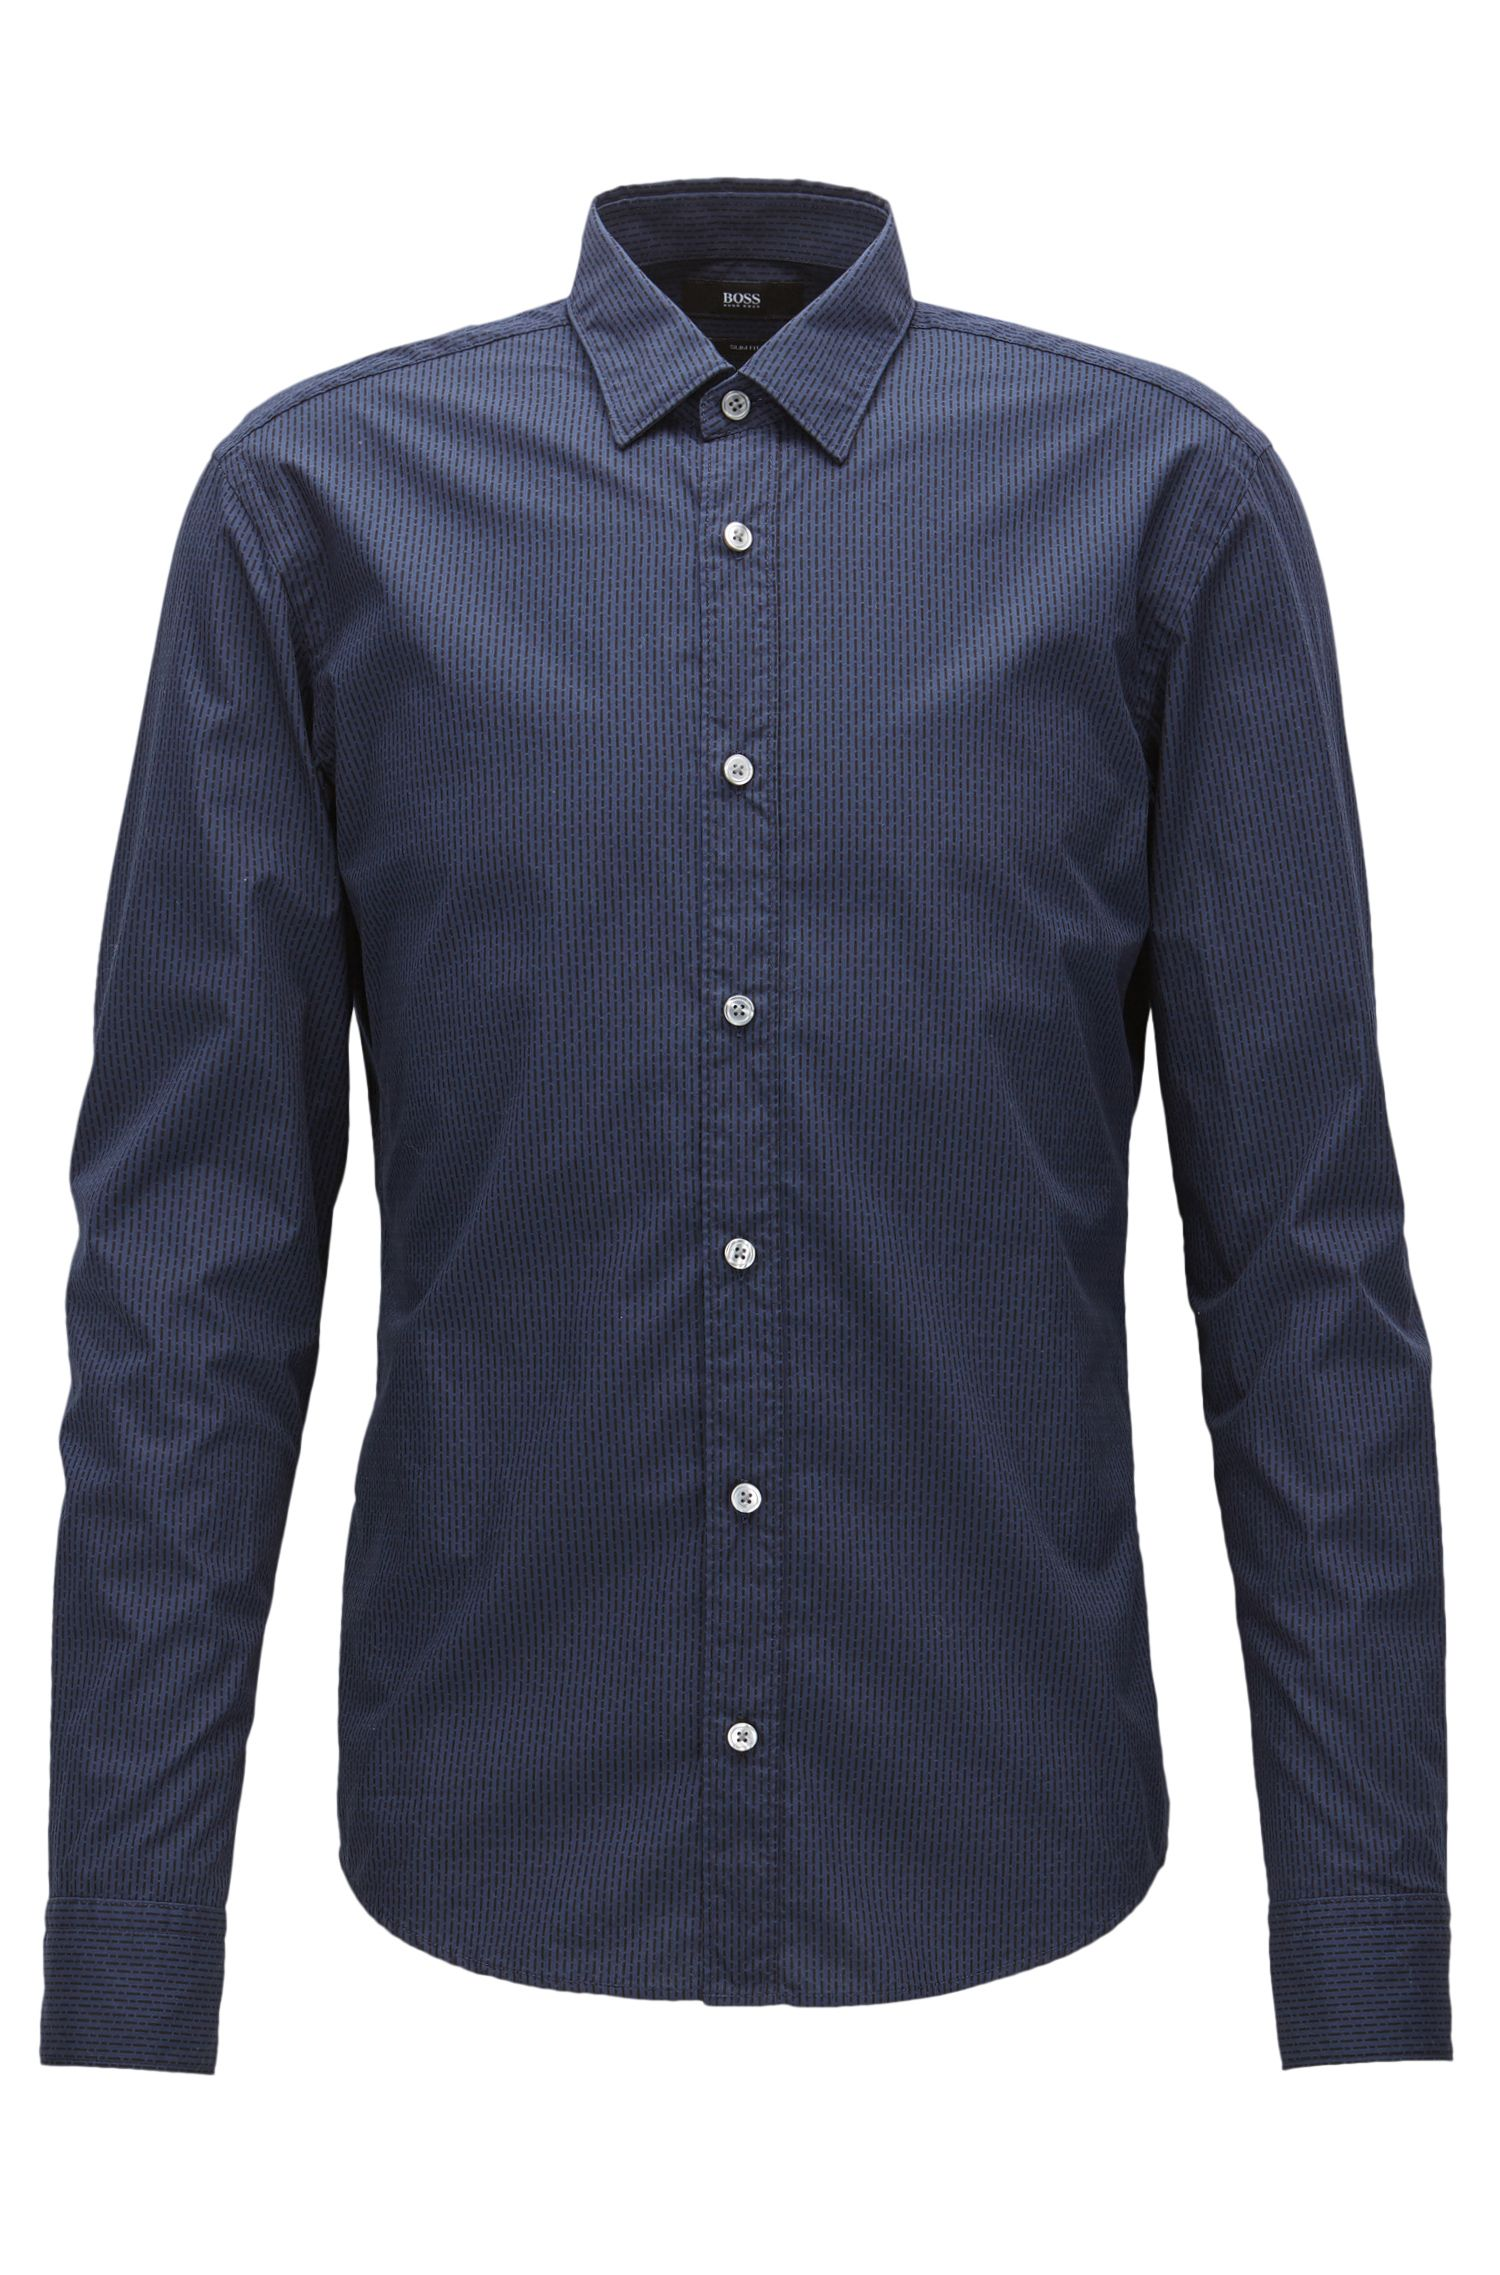 Patterned slim-fit cotton shirt for Mercedes-Benz Collection